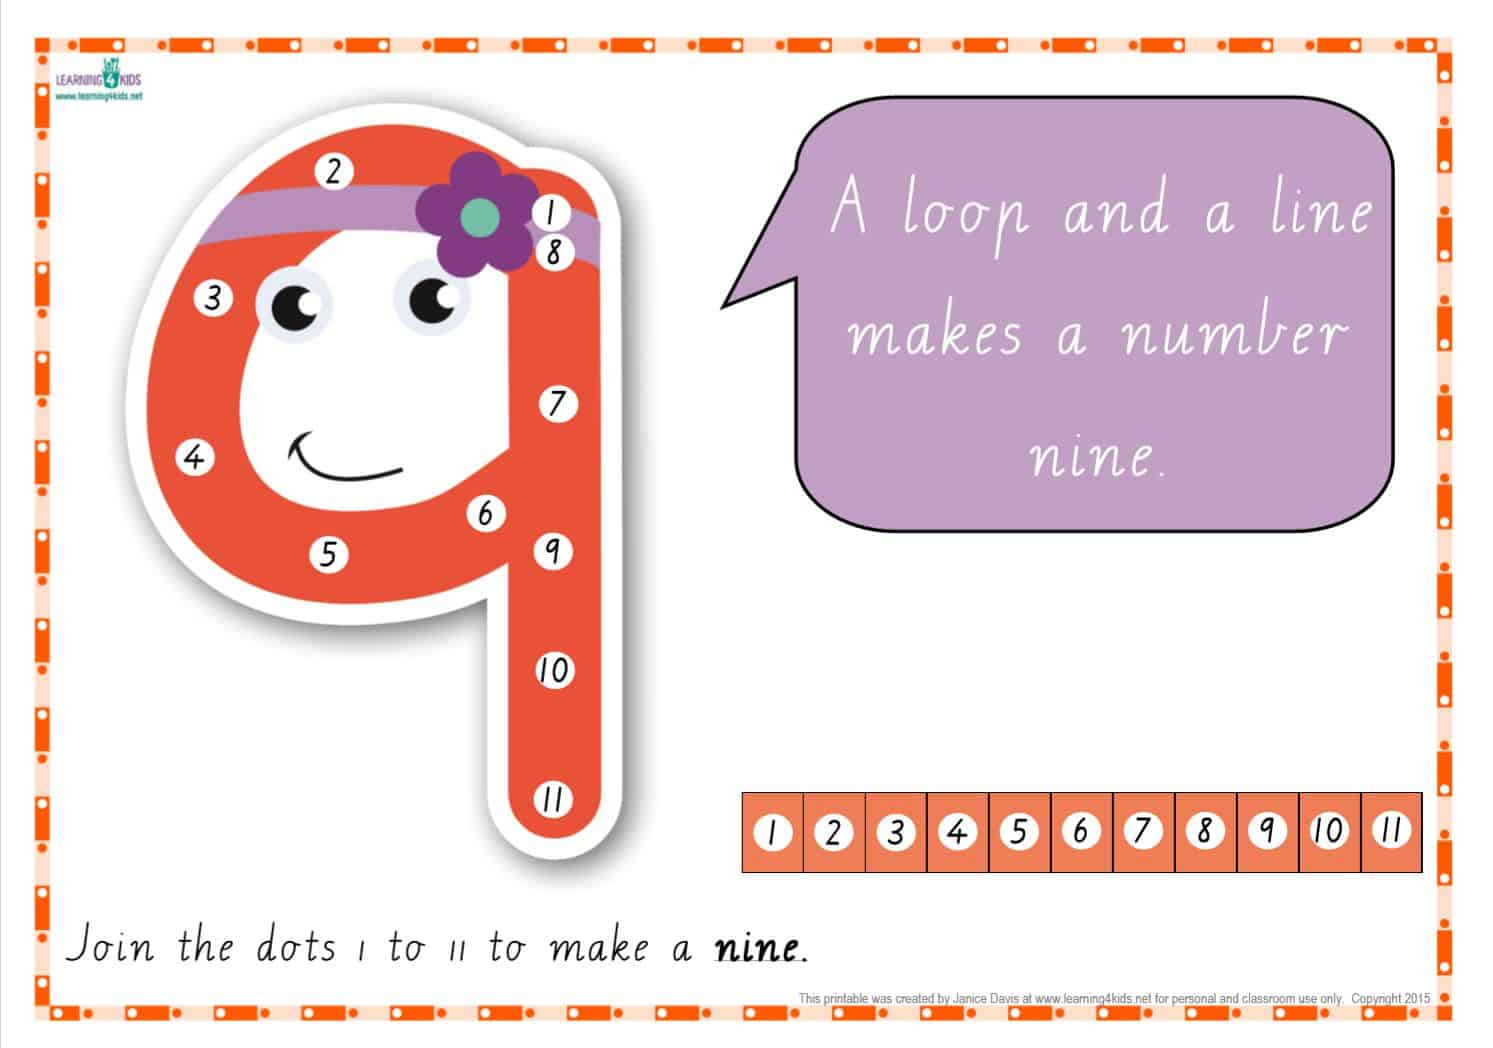 photograph regarding Printable Numbers 0 9 named Dot-in the direction of-Dot Range Rhyme Charts (Cursive Print)